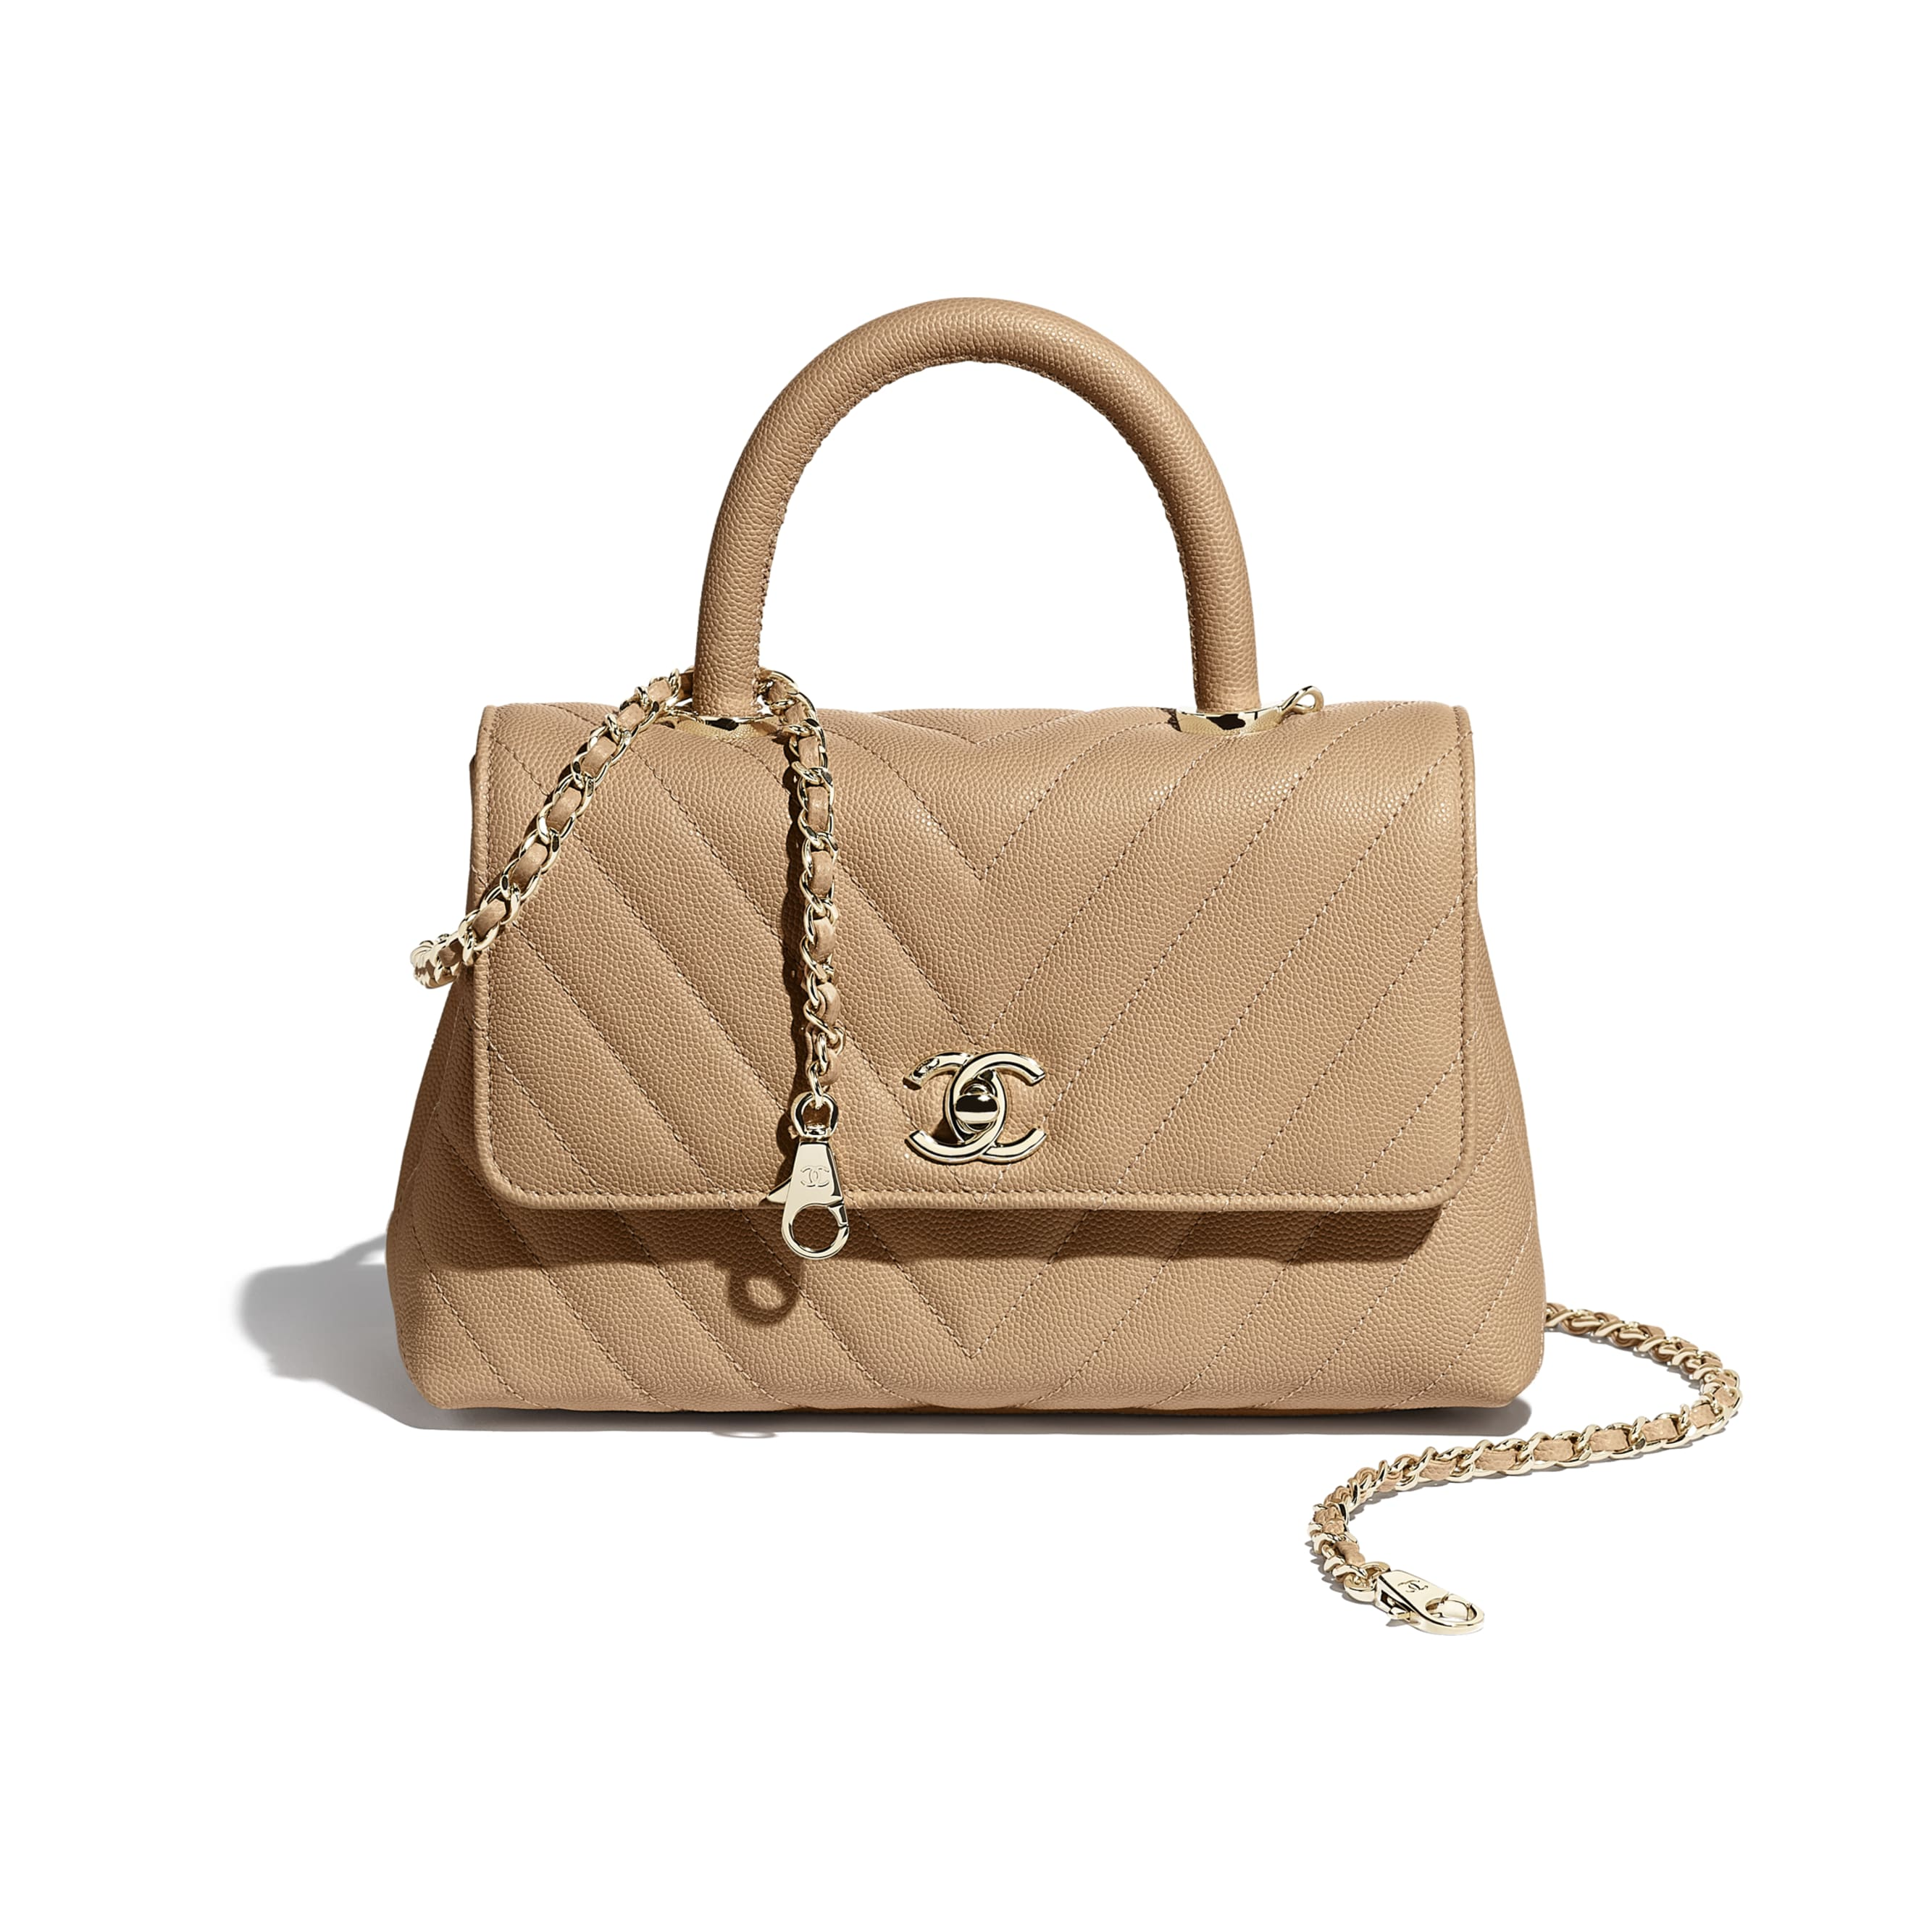 Small Flap Bag With Top Handle - Beige - Grained Calfskin & Gold-Tone Metal - Extra view - see standard sized version